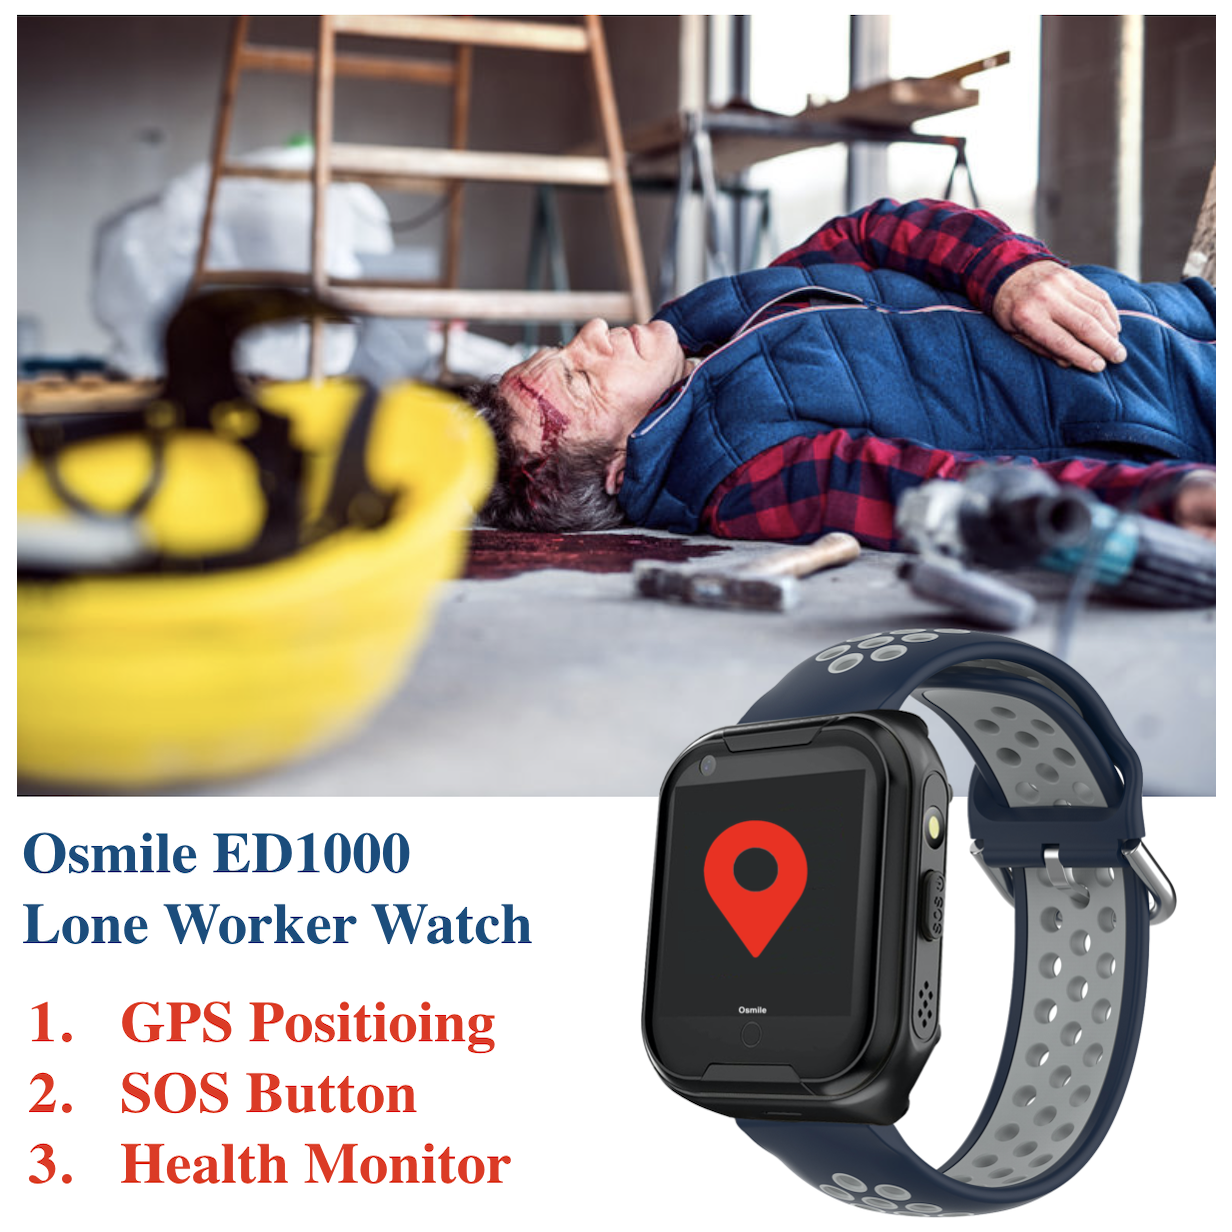 Osmile ED1000 SOS Alert for Security Management up to 50 lone worke1